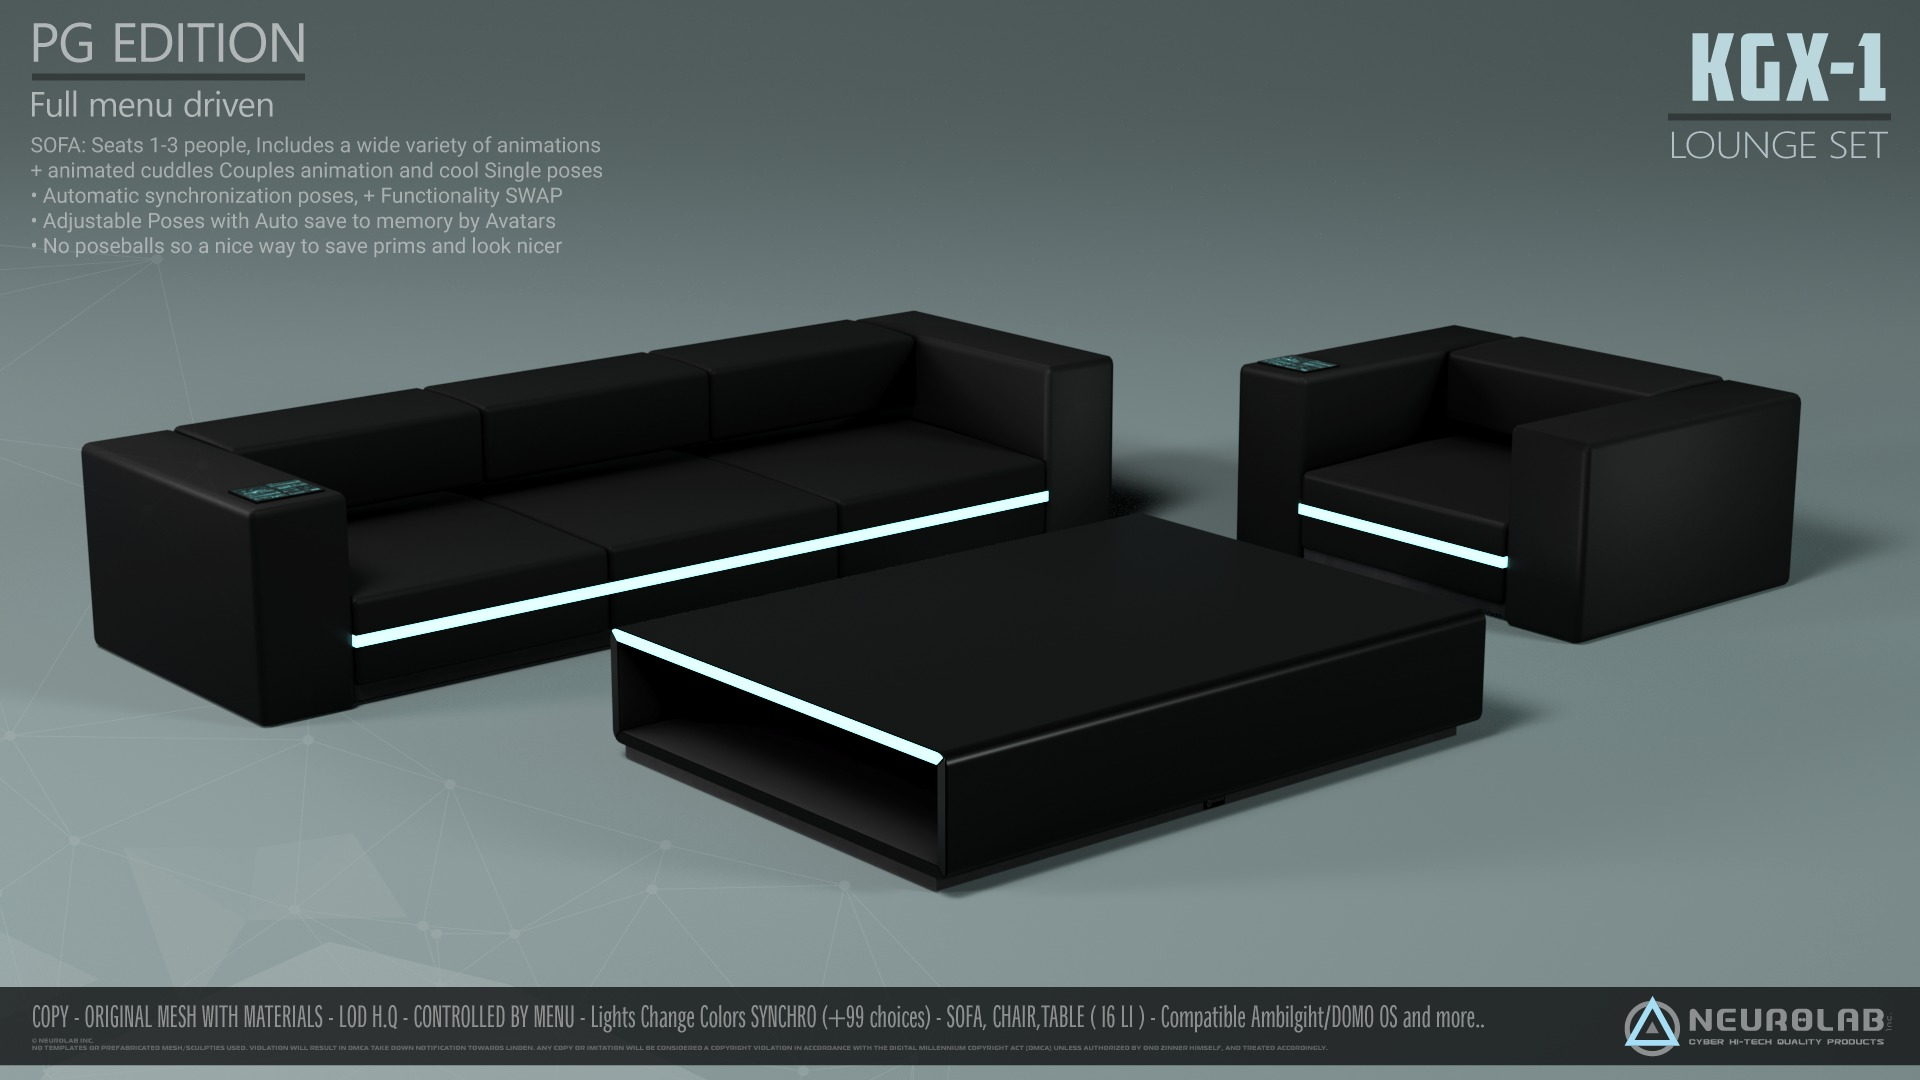 KGX-1 SOFA LOUNGE SET Collection (V.1)